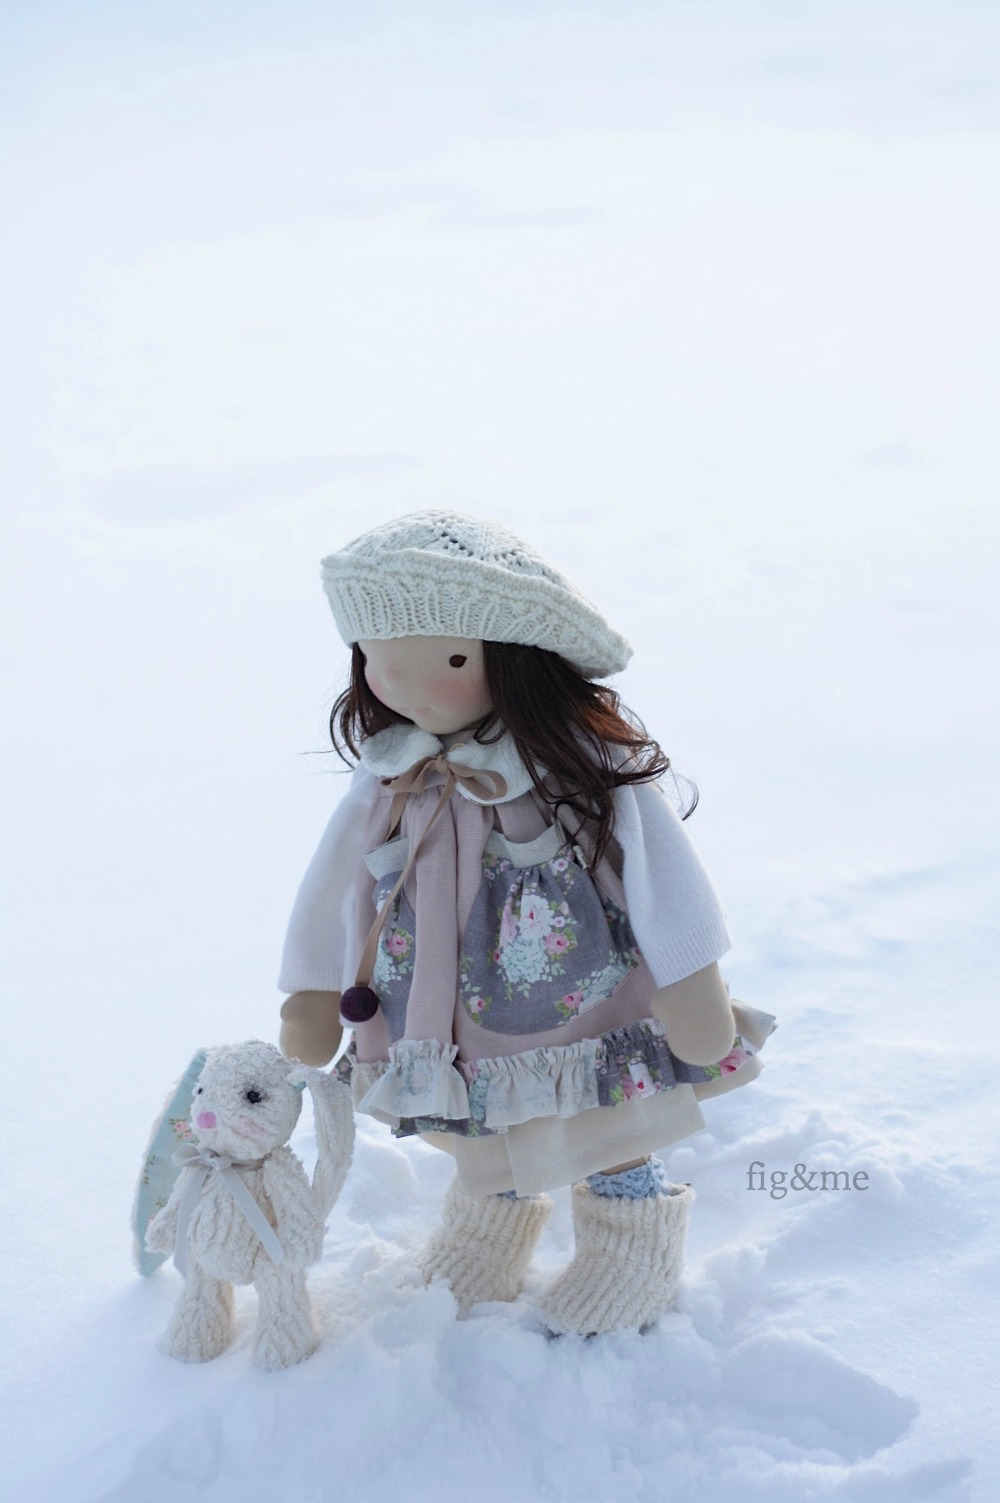 In the snow field, by fig and me